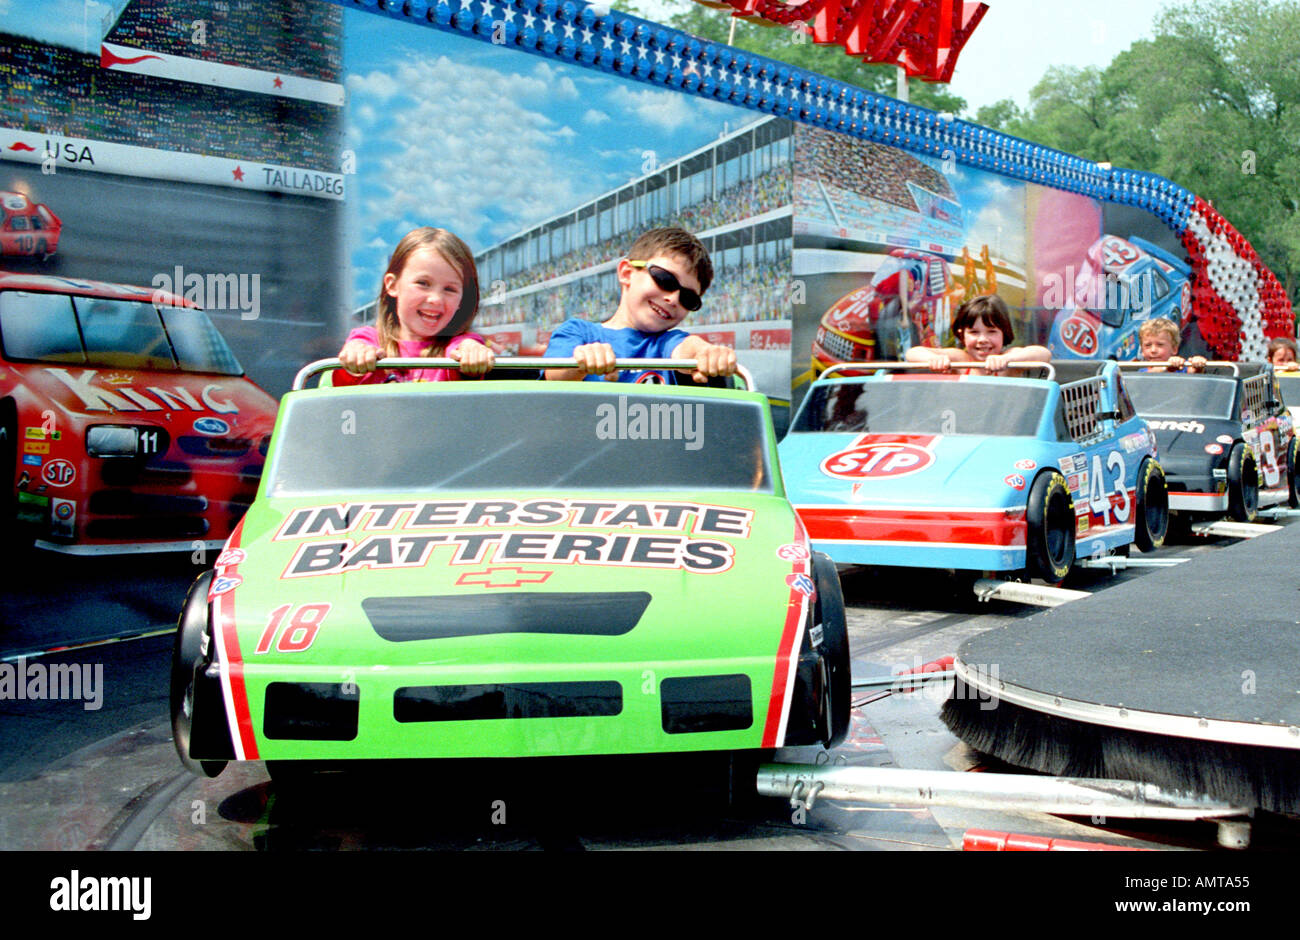 5 year old girl and brother ride race cars at a carnival 2 Stock ...